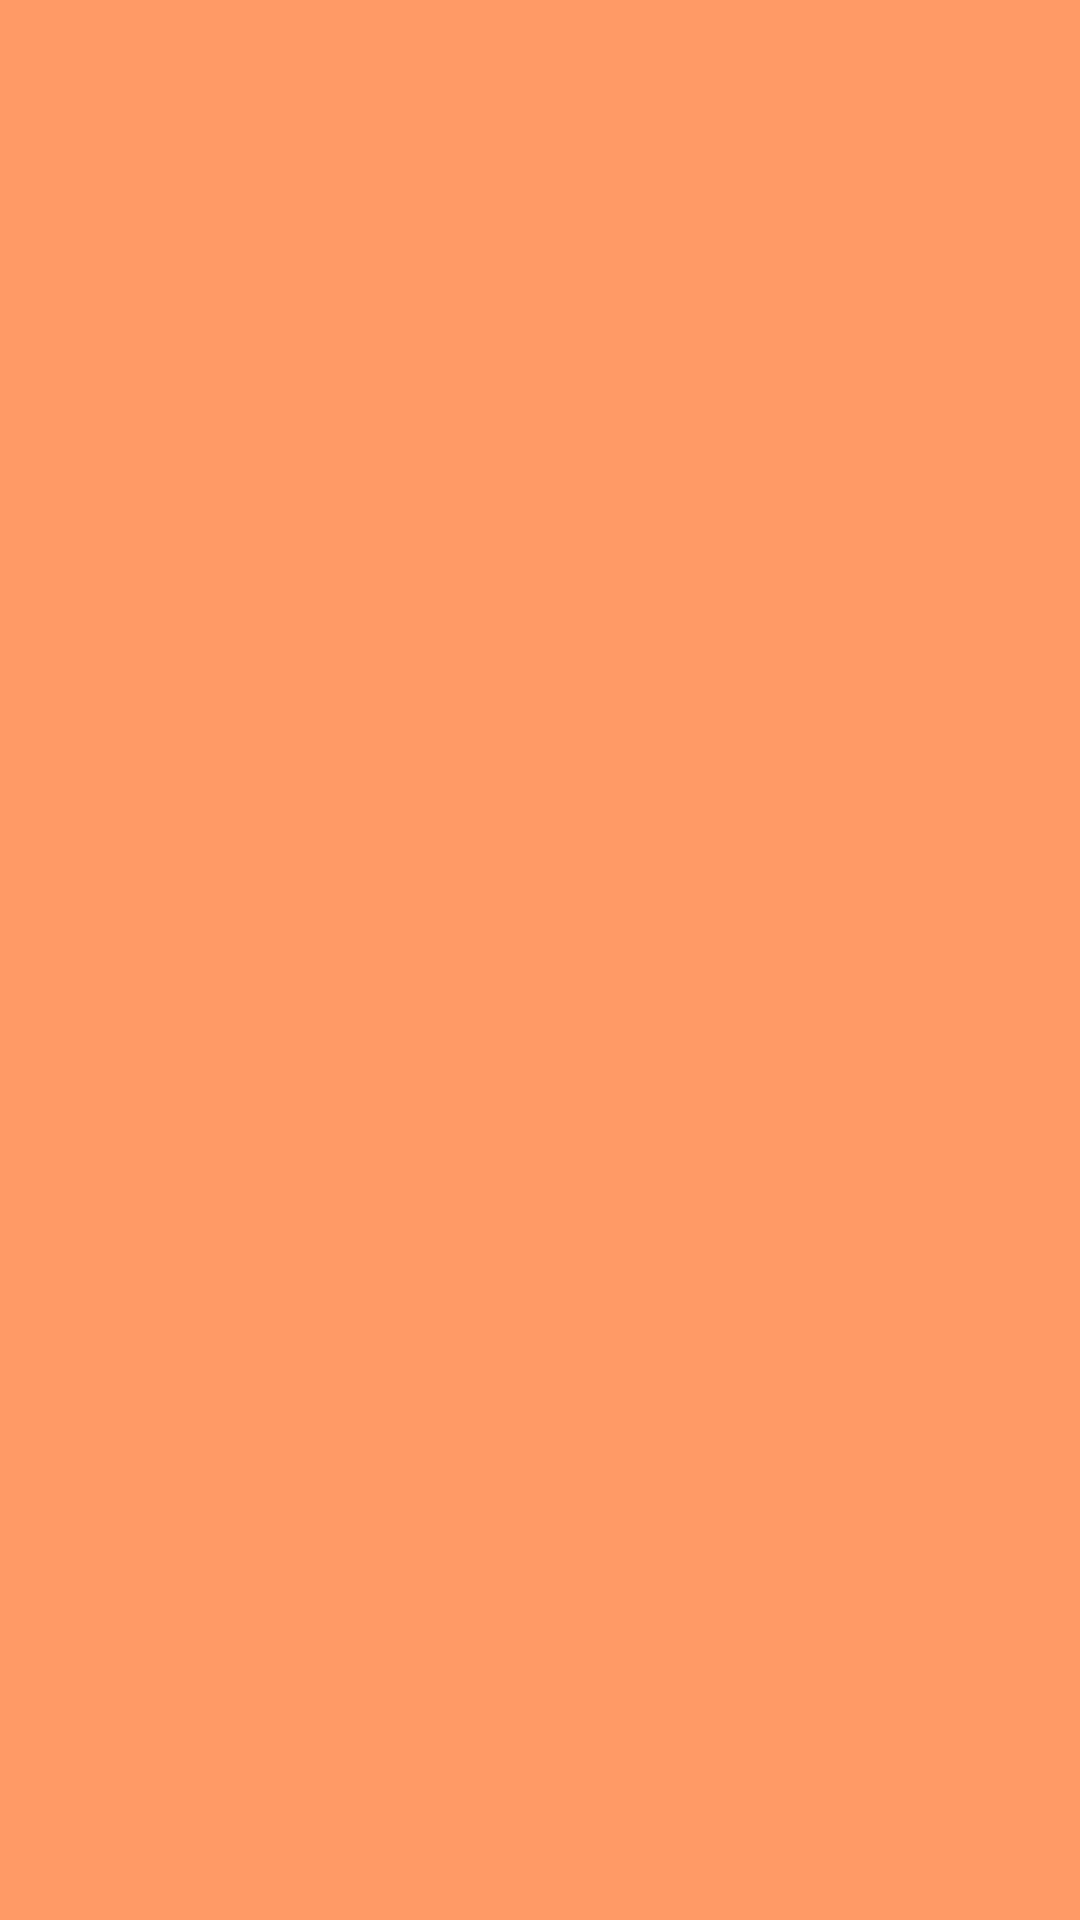 1080x1920 Atomic Tangerine Solid Color Background